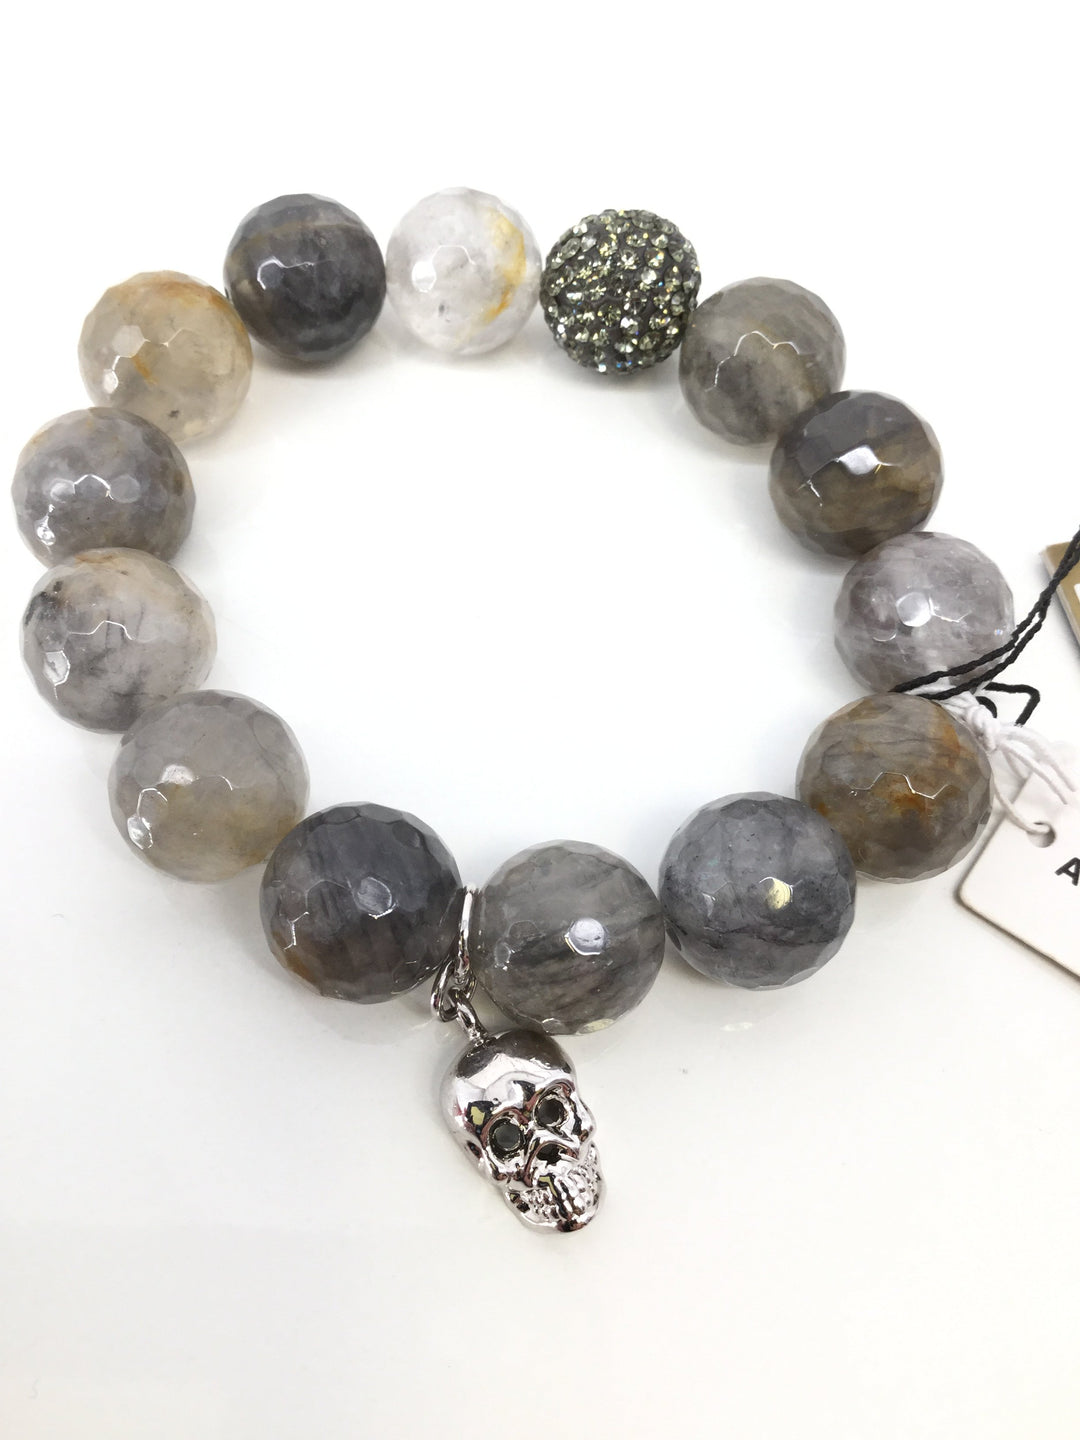 NEW! Nordstrom Bracelet - <P>NEW WITH TAGS! EARTH TONE GENUINE AGATE STONE AND AUSTRIAN CRYSTAL BRACELET. SILVER RHINESTONE BEAD AND SILVER SKULL CHARM.</P>